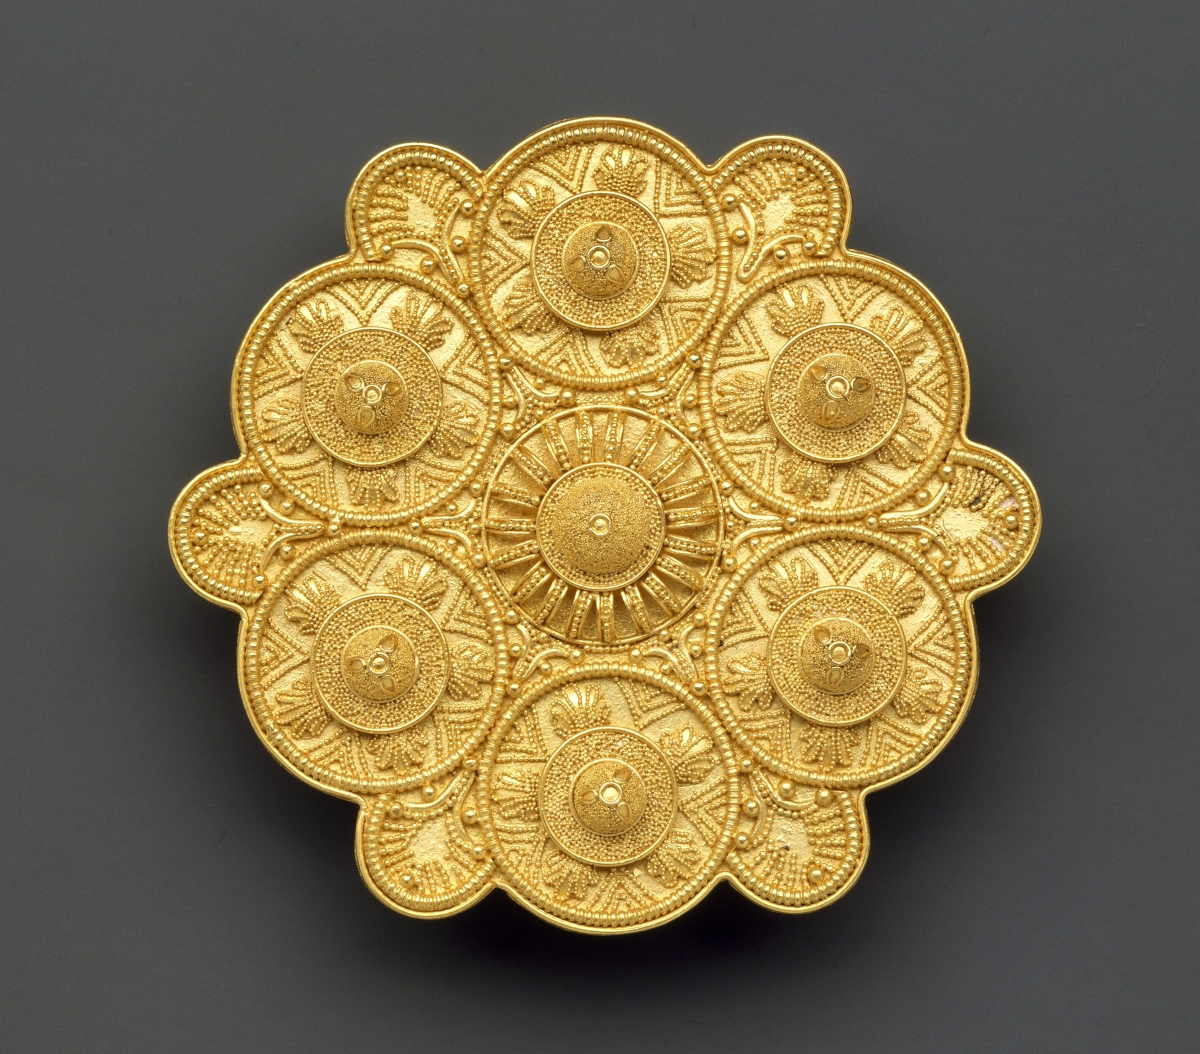 This circa 1858 lobed brooch by Alessandro Castellani (1823–1883) was modeled on a similar ancient Etruscan work that was part of the Campana collection, then in Italy. The jeweler had the opportunity to study and copy pieces before the archaeological artifacts were sold to the French in 1861. The Sixth Century BCE original ornament that inspired this brooch is in the Louvre.